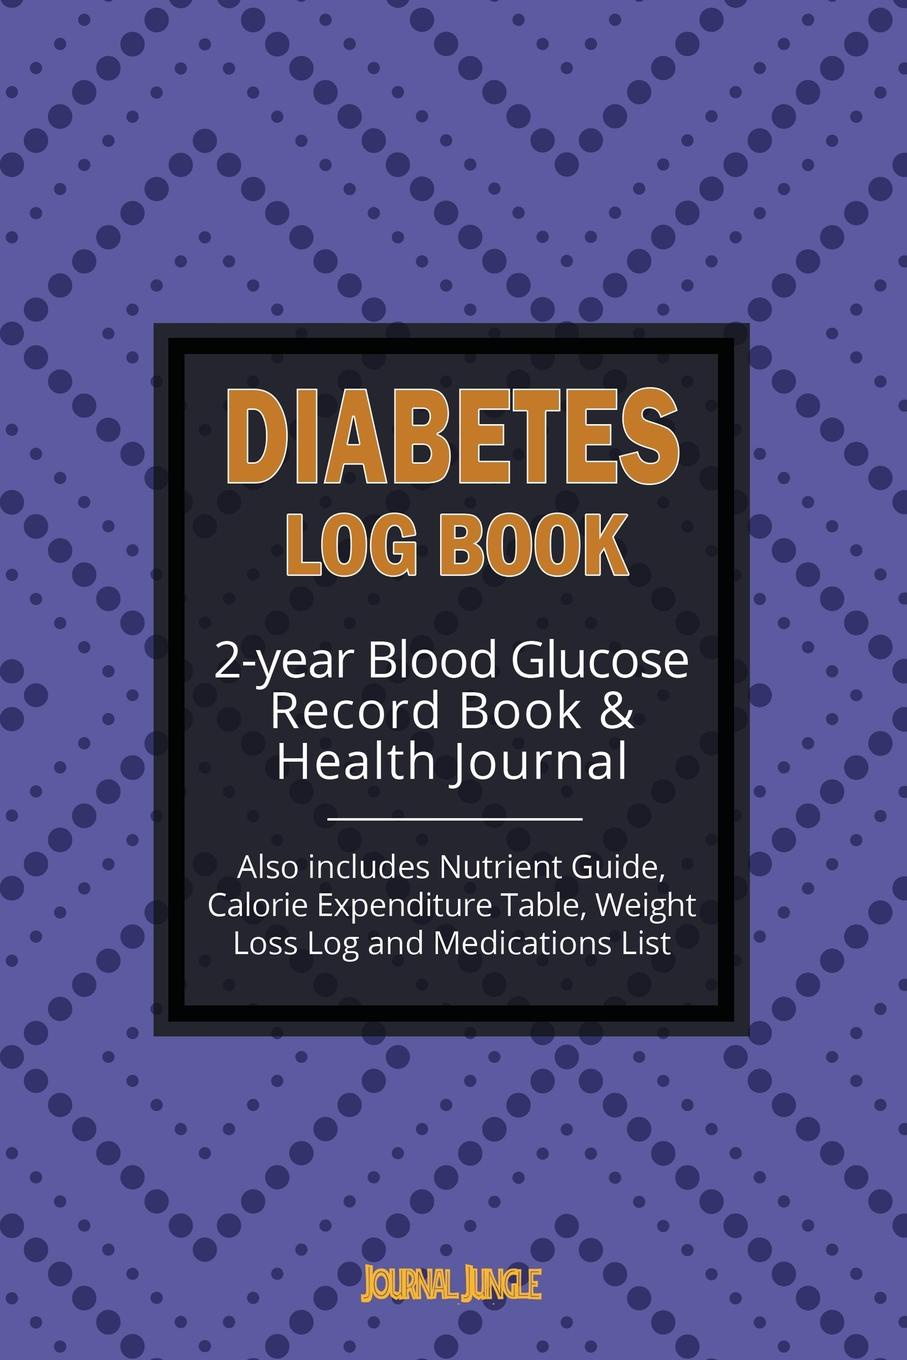 Journal Jungle Publishing Diabetes Log Book. 2-year Record Book for Monitoring Blood Glucose / General Health Journal . Weight Loss Log (6x9 Inches / Portable) 3 inches of blood 3 inches of blood long live heavy metal